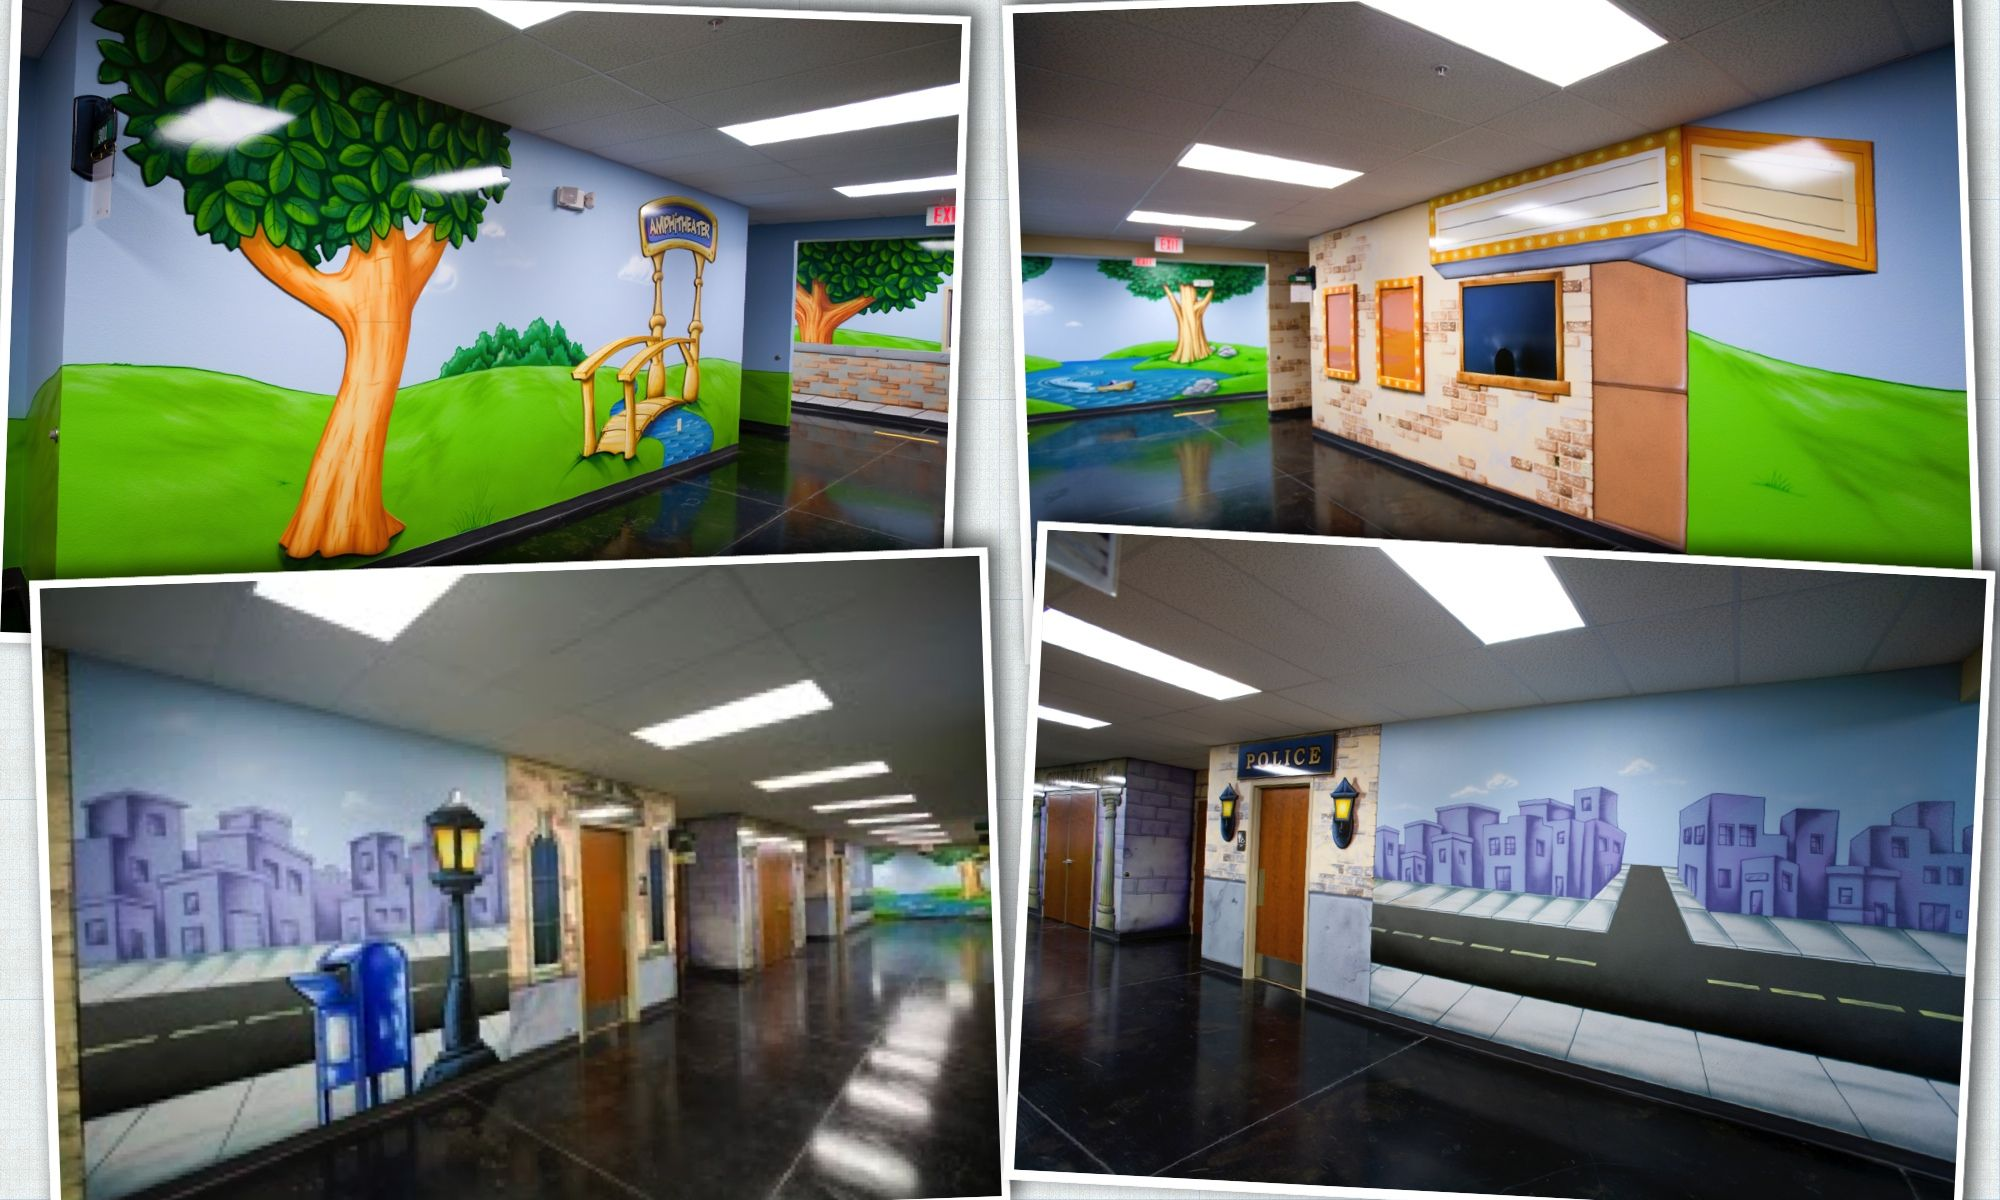 City Church Theme For Your Childrens Ministry Space